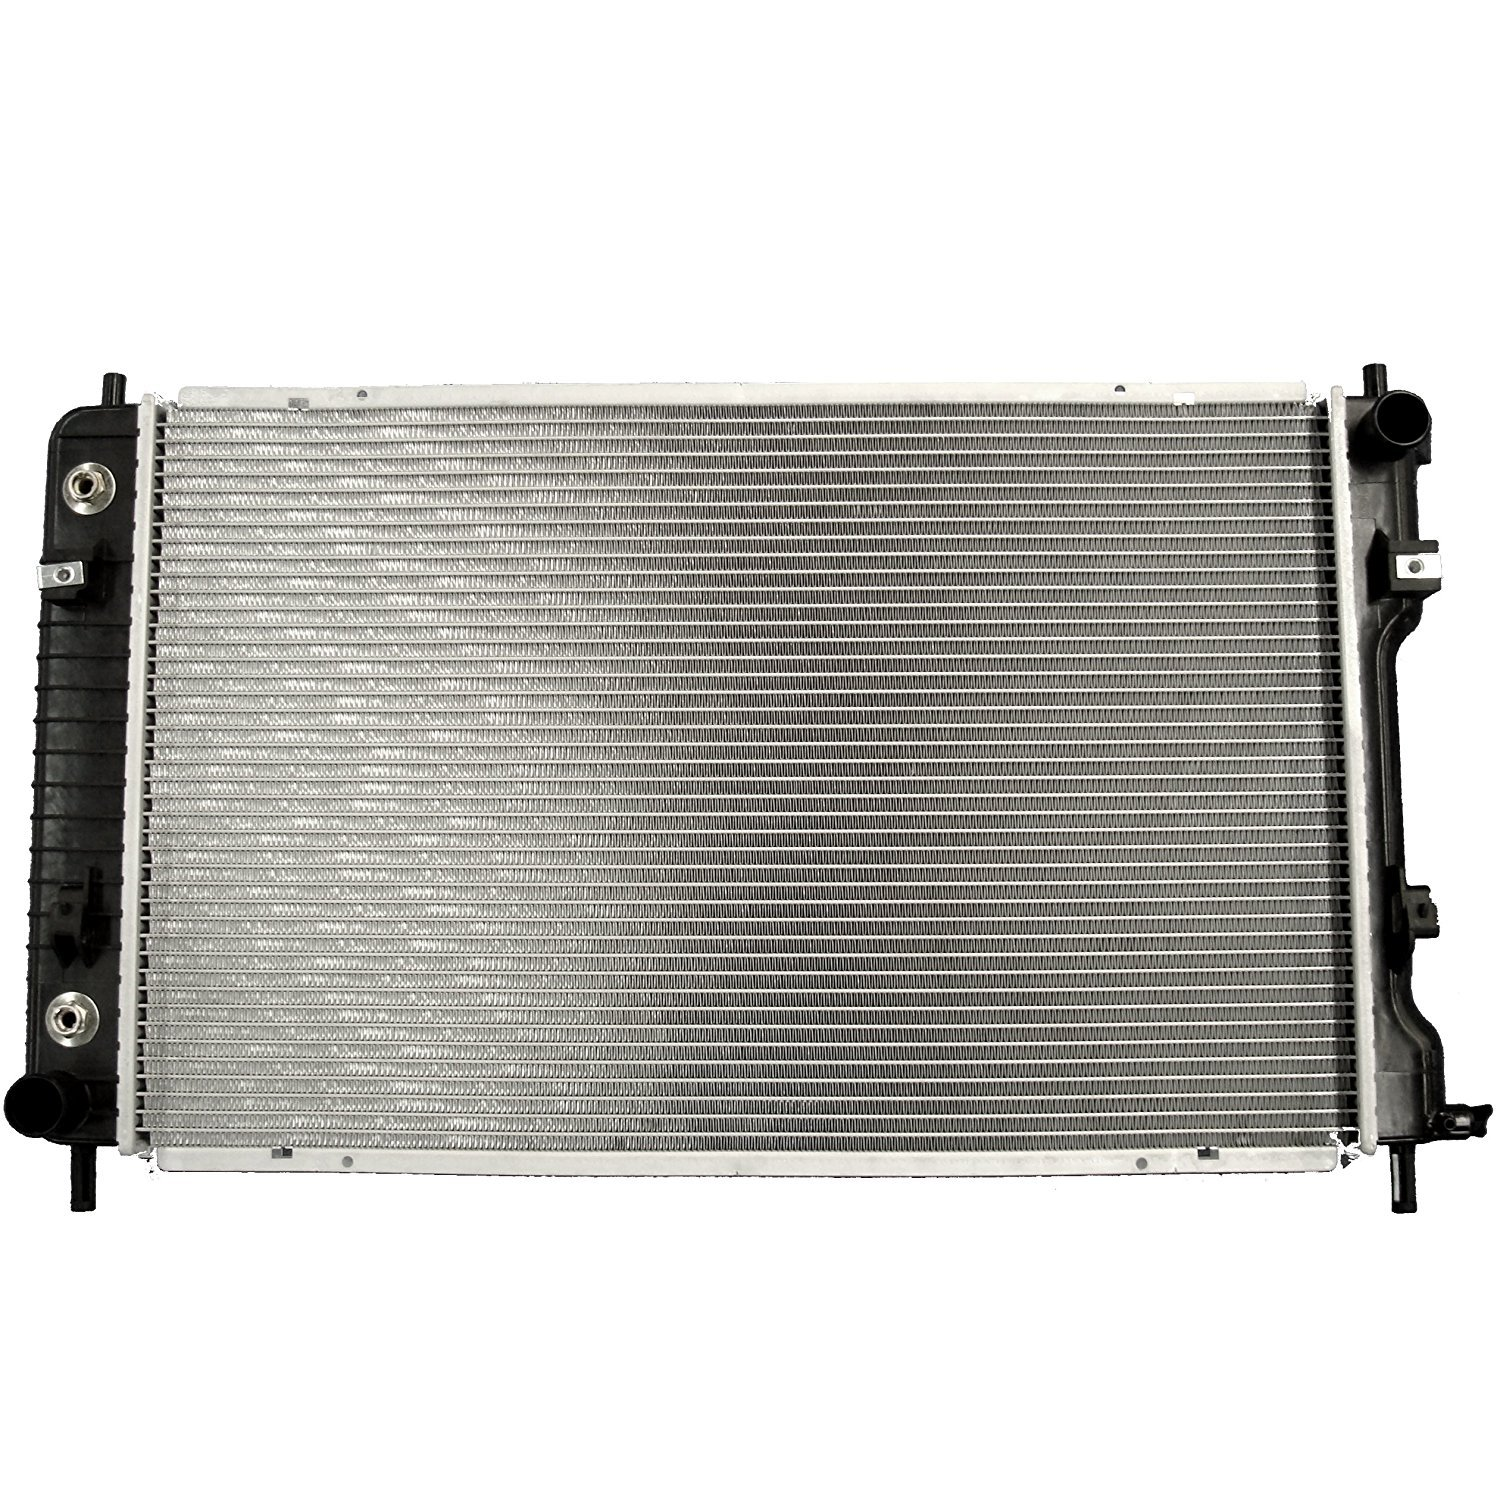 ECCPP Radiator 13103 for 2008-2013 Chevrolet Equinox GMC Terrain Pontiac Torrent 2.4L 3.6L 3.0L